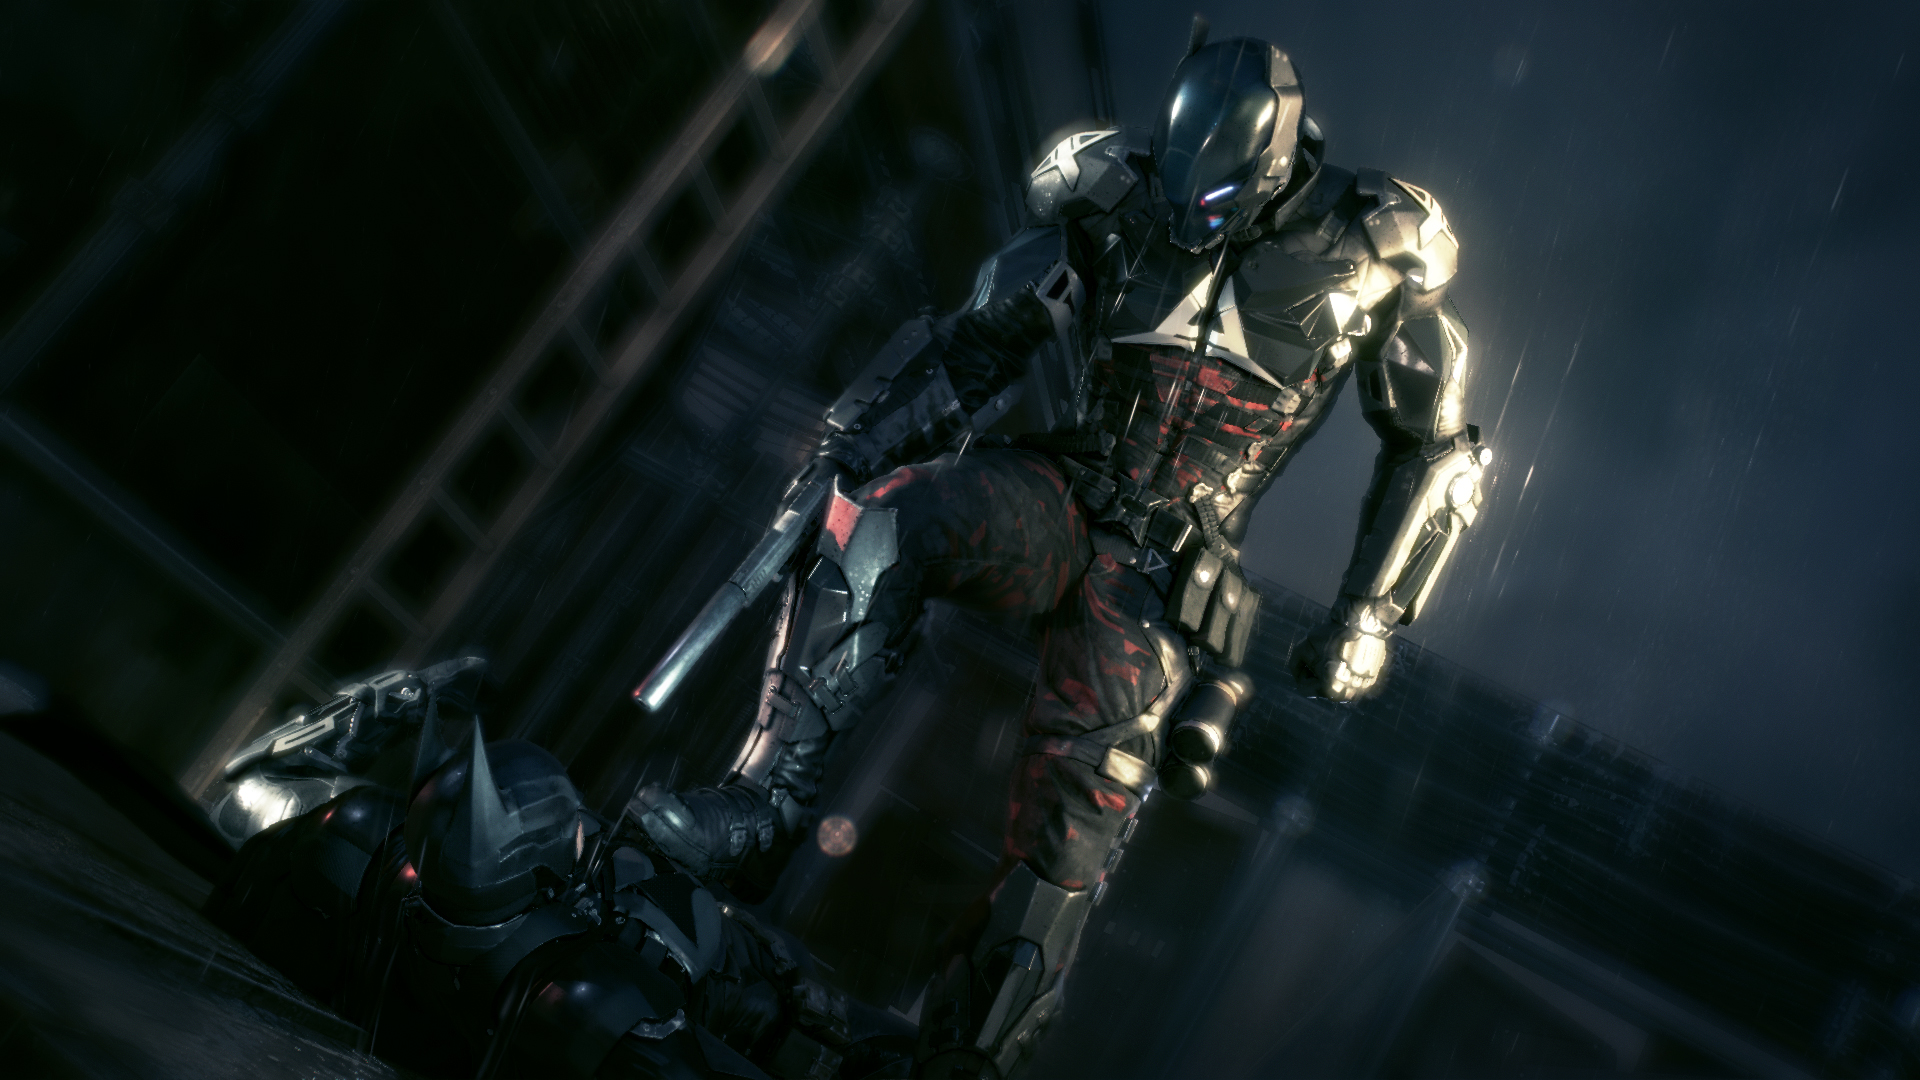 Download Batman Arkham Knight 2014 HD Wallpaper 6547 Full Size 1920x1080